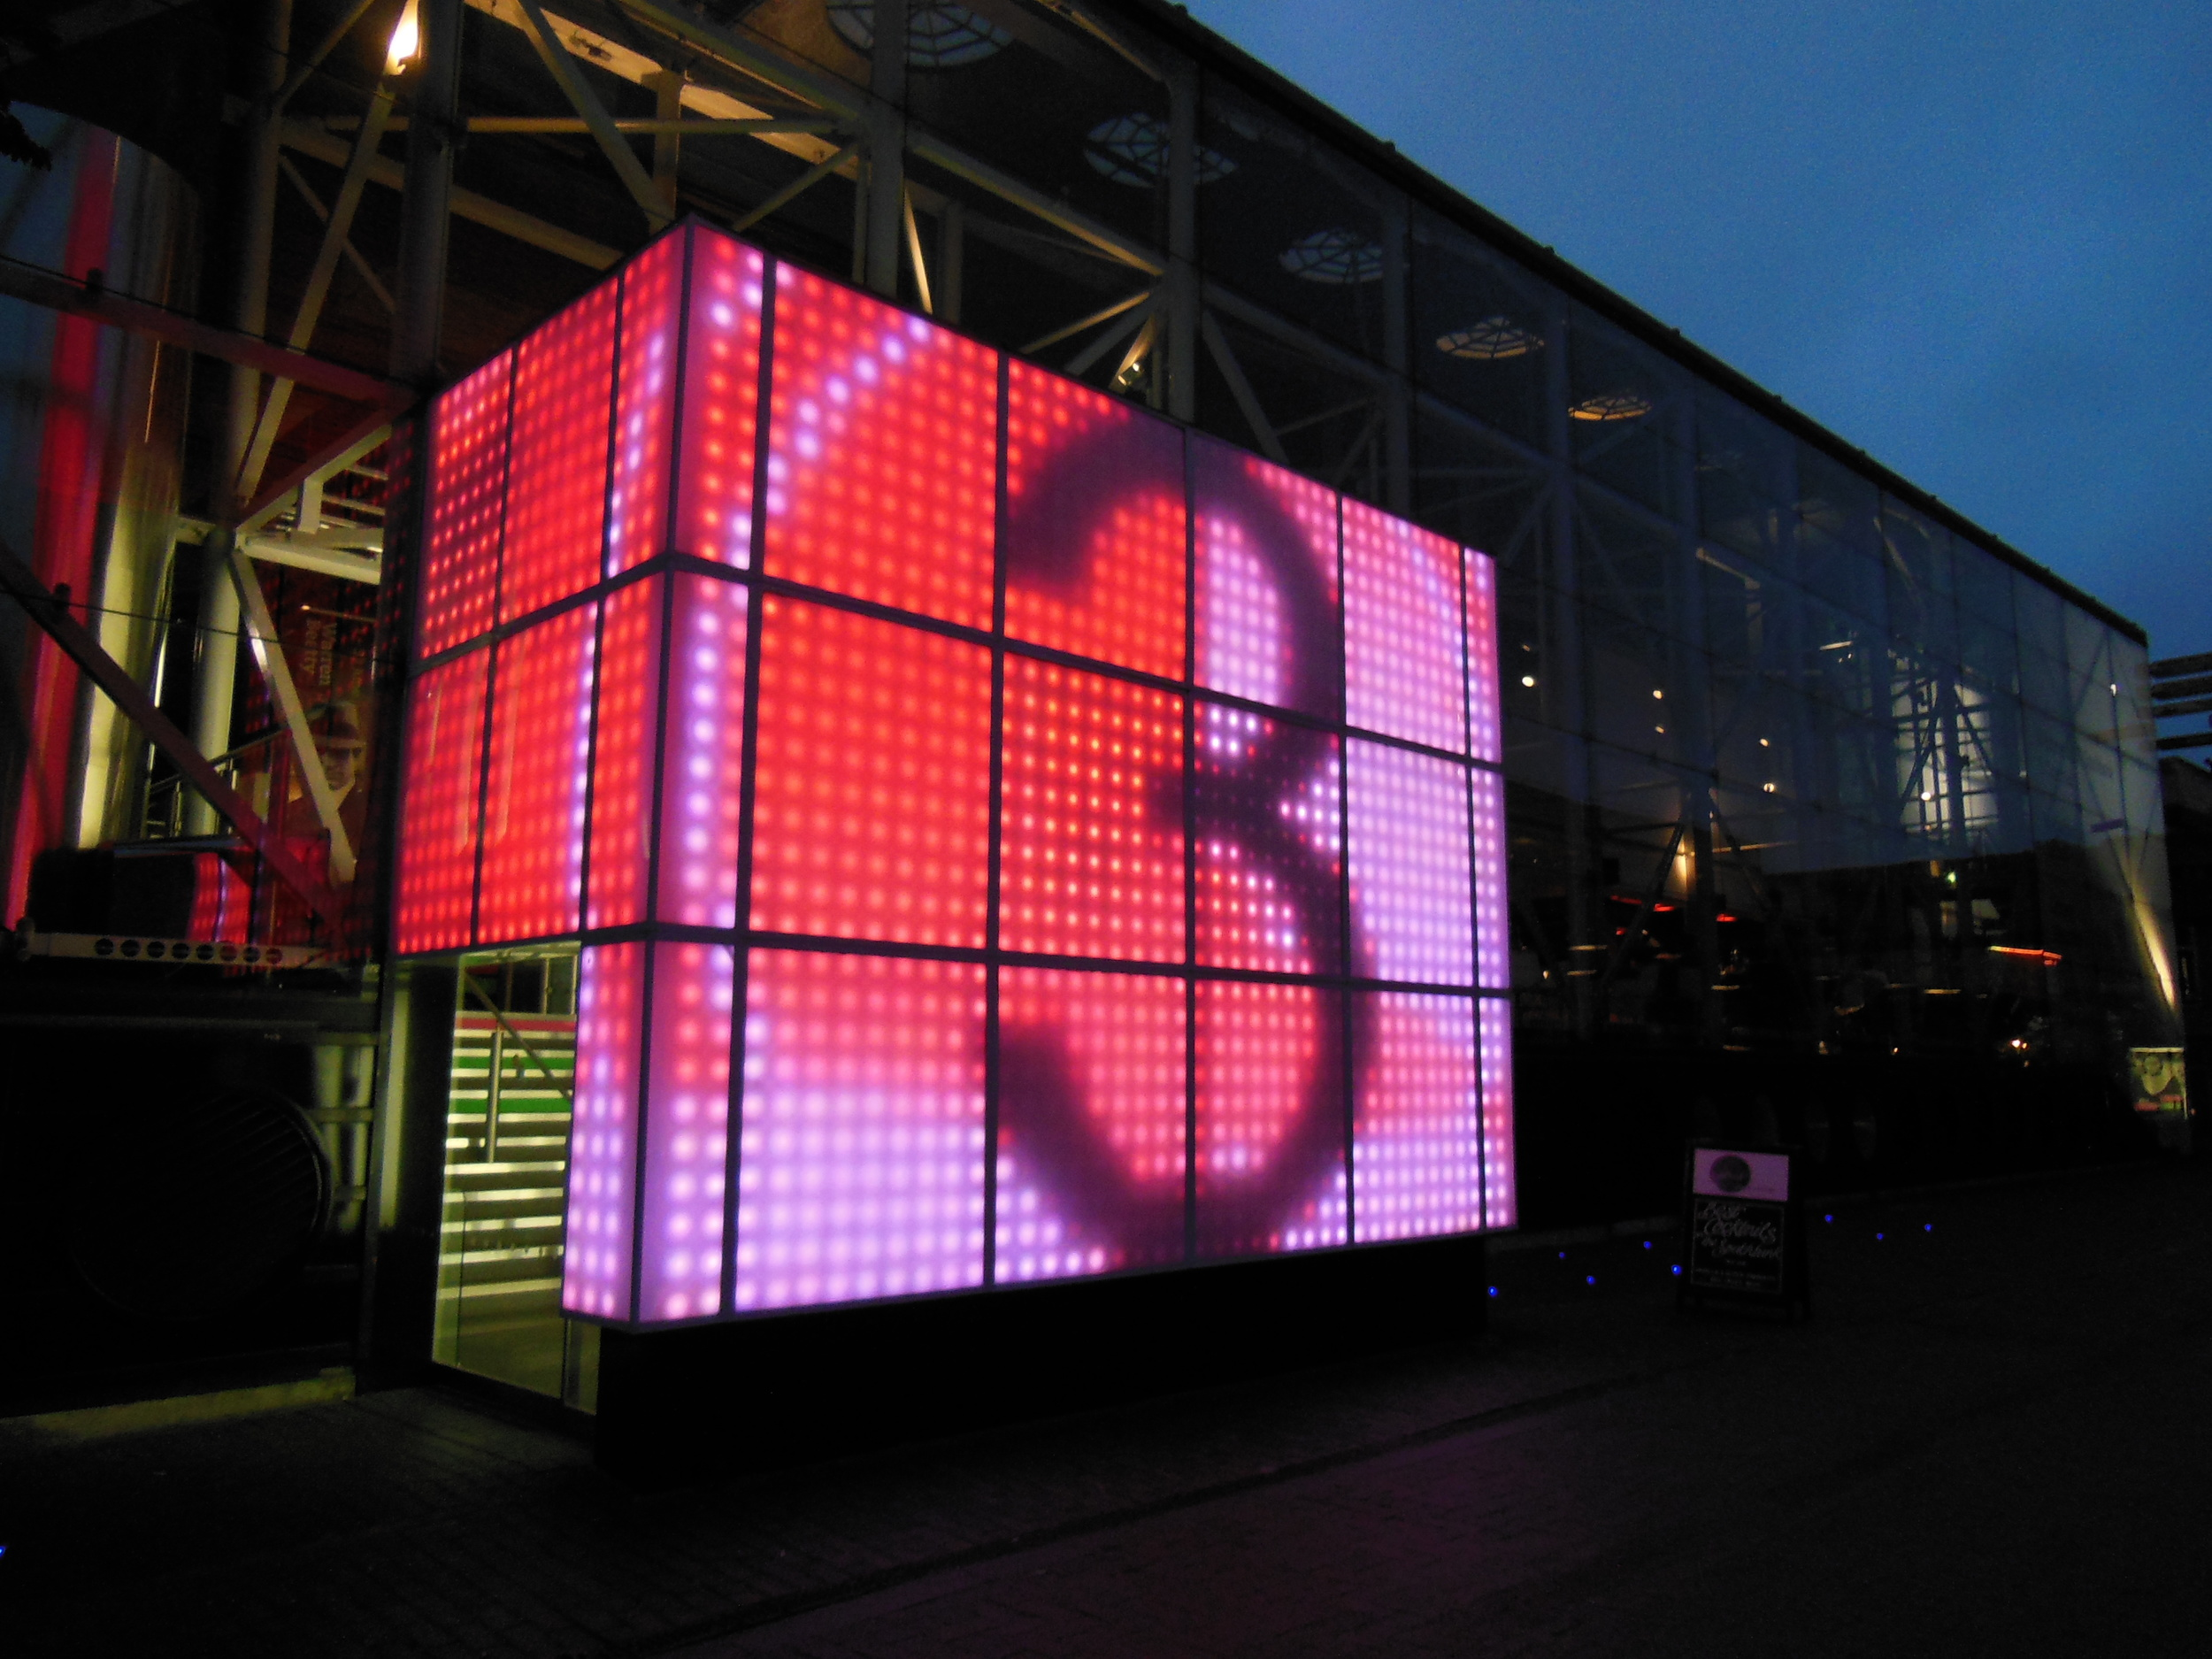 The countdown clock art outside the National Theatre... I definitely had great timing that day!